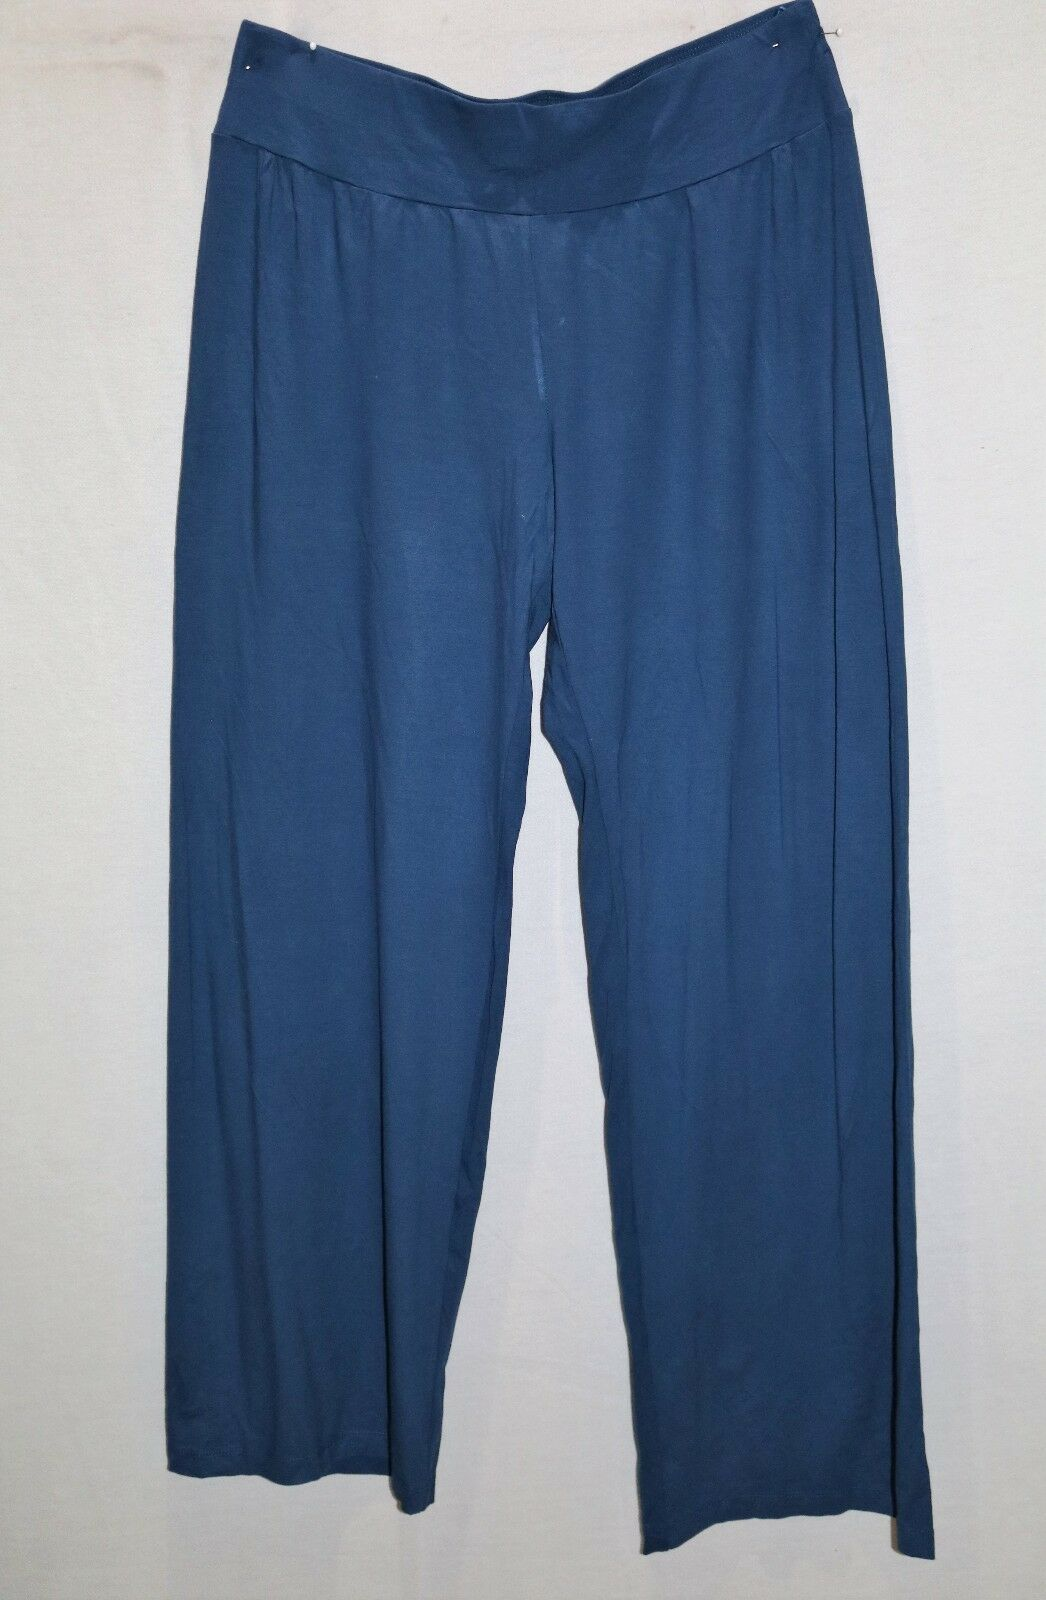 The Luxe Collection Brand Navy Wide Leg Palazzo Pants Größe L BNWT  TP11